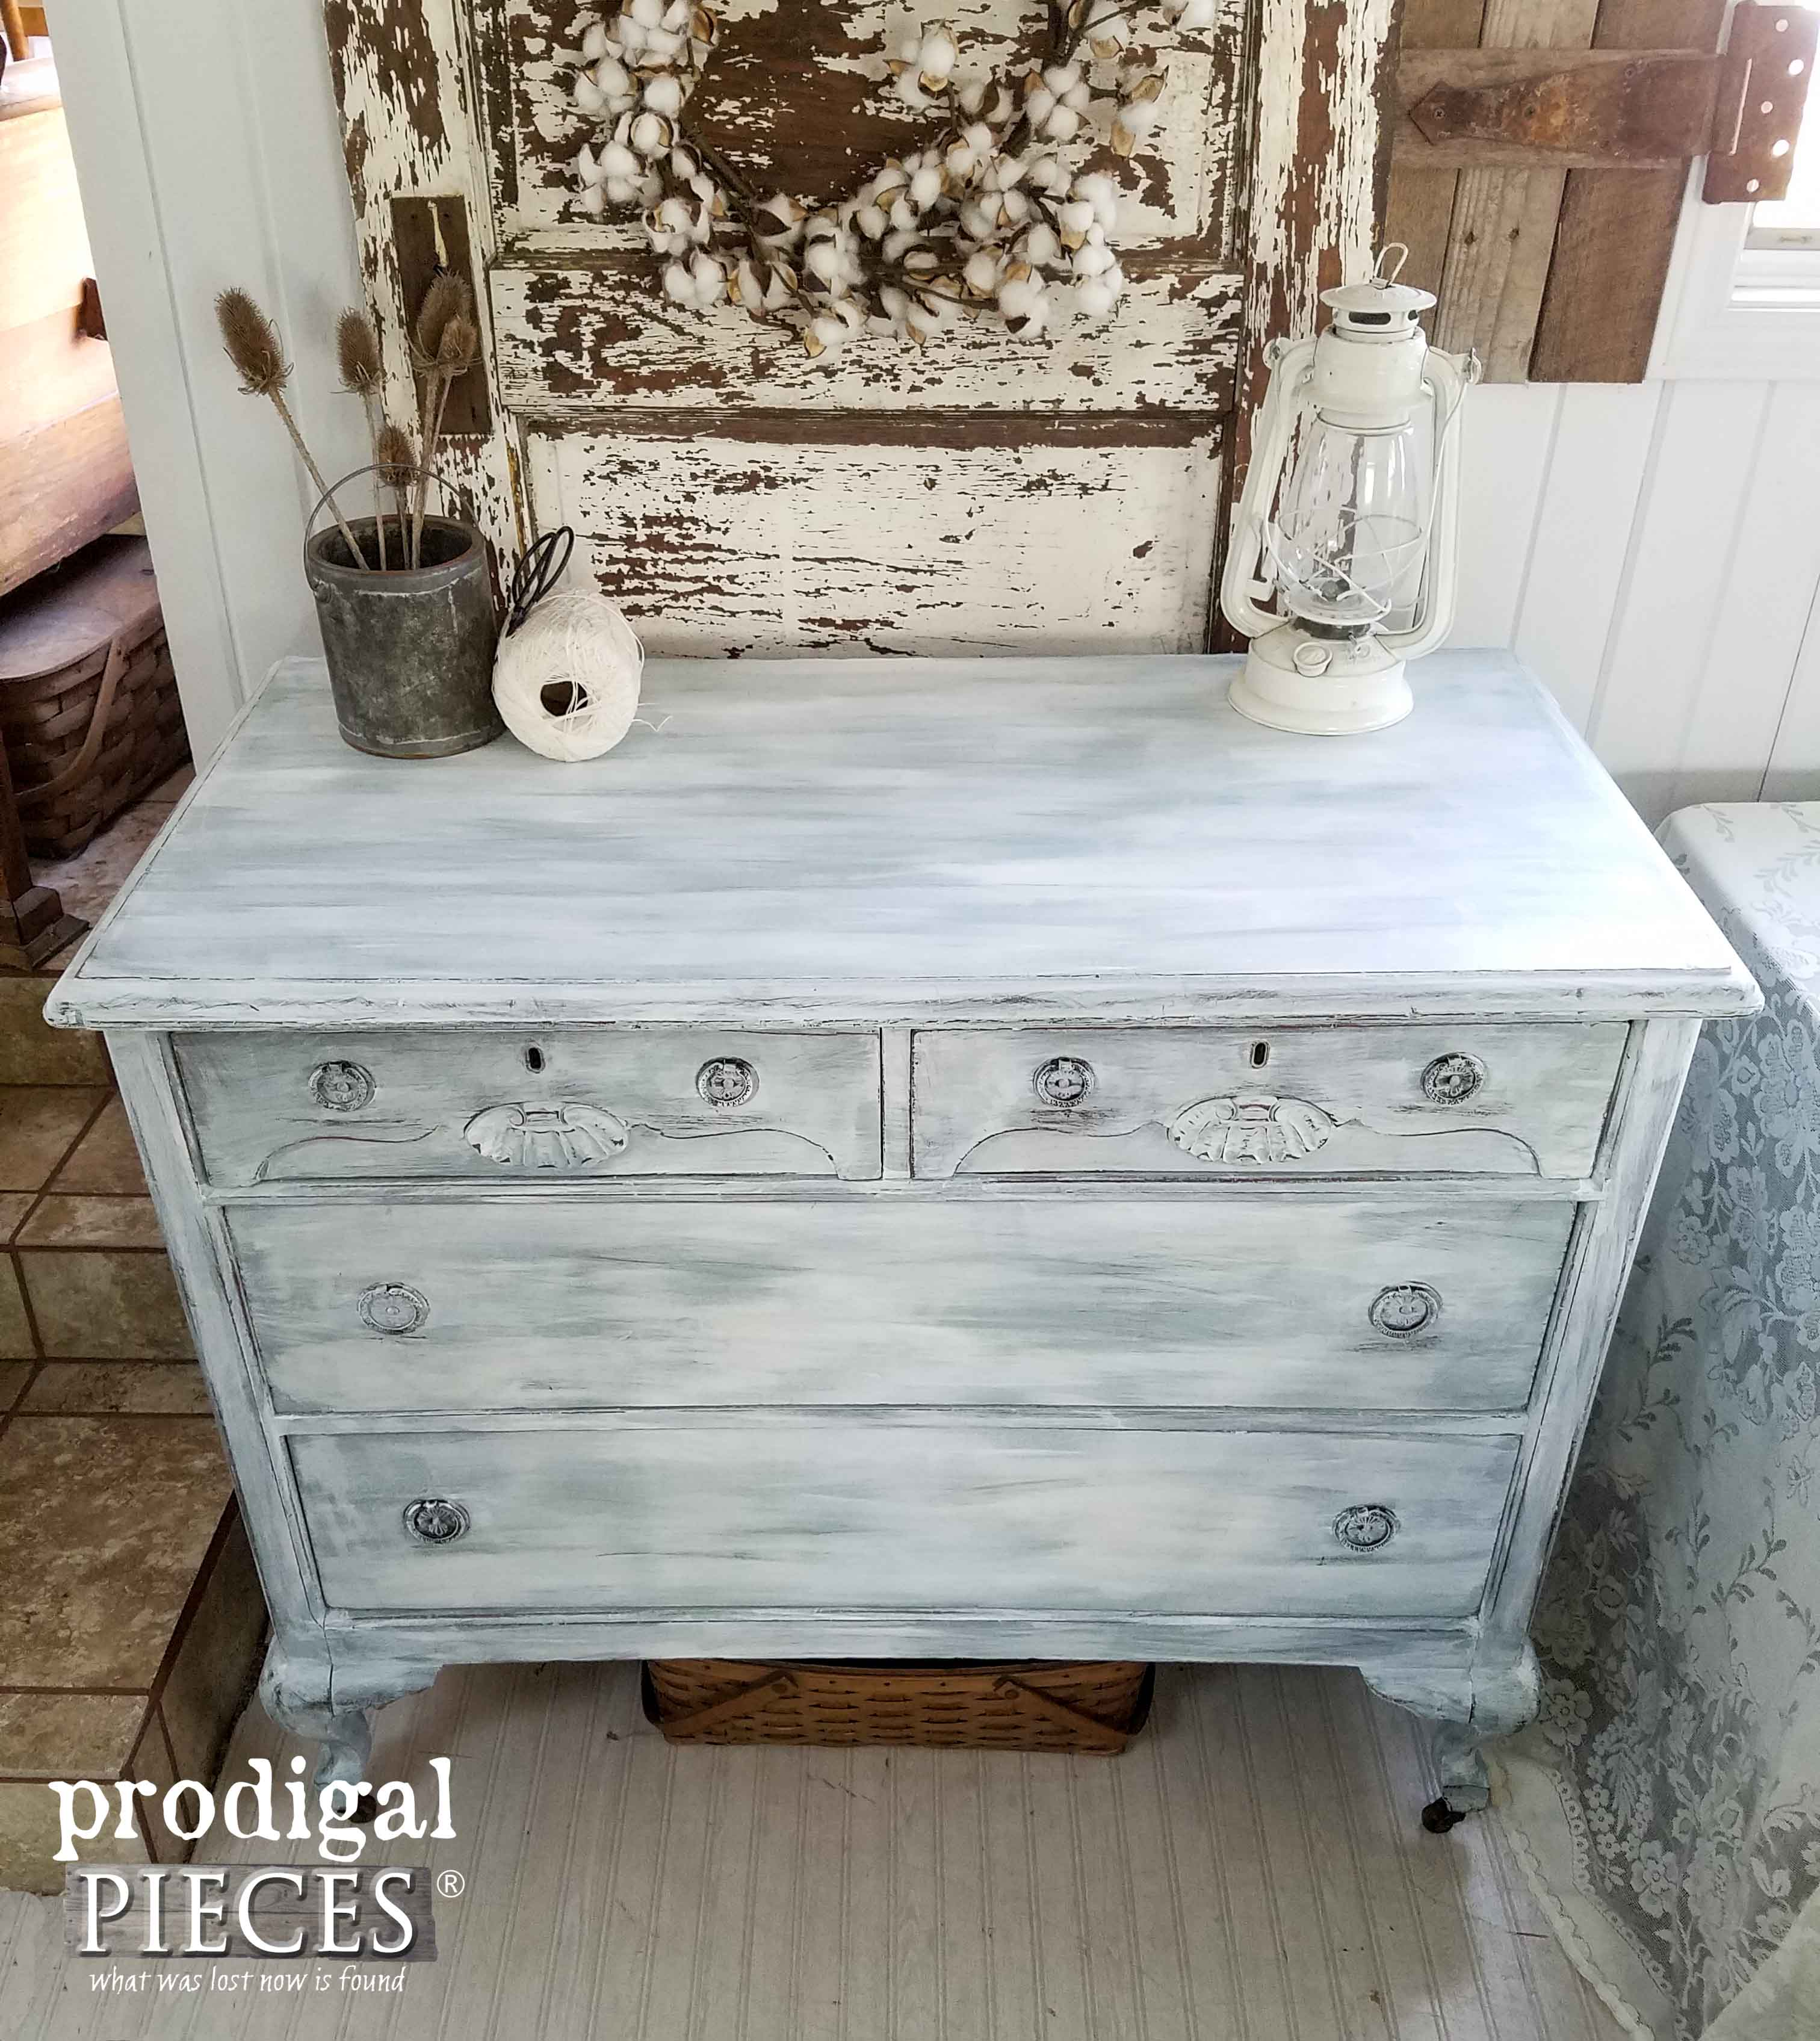 Top of Farmhouse Chic Dresser Made New by Prodigal Pieces | www.prodigalpieces.com